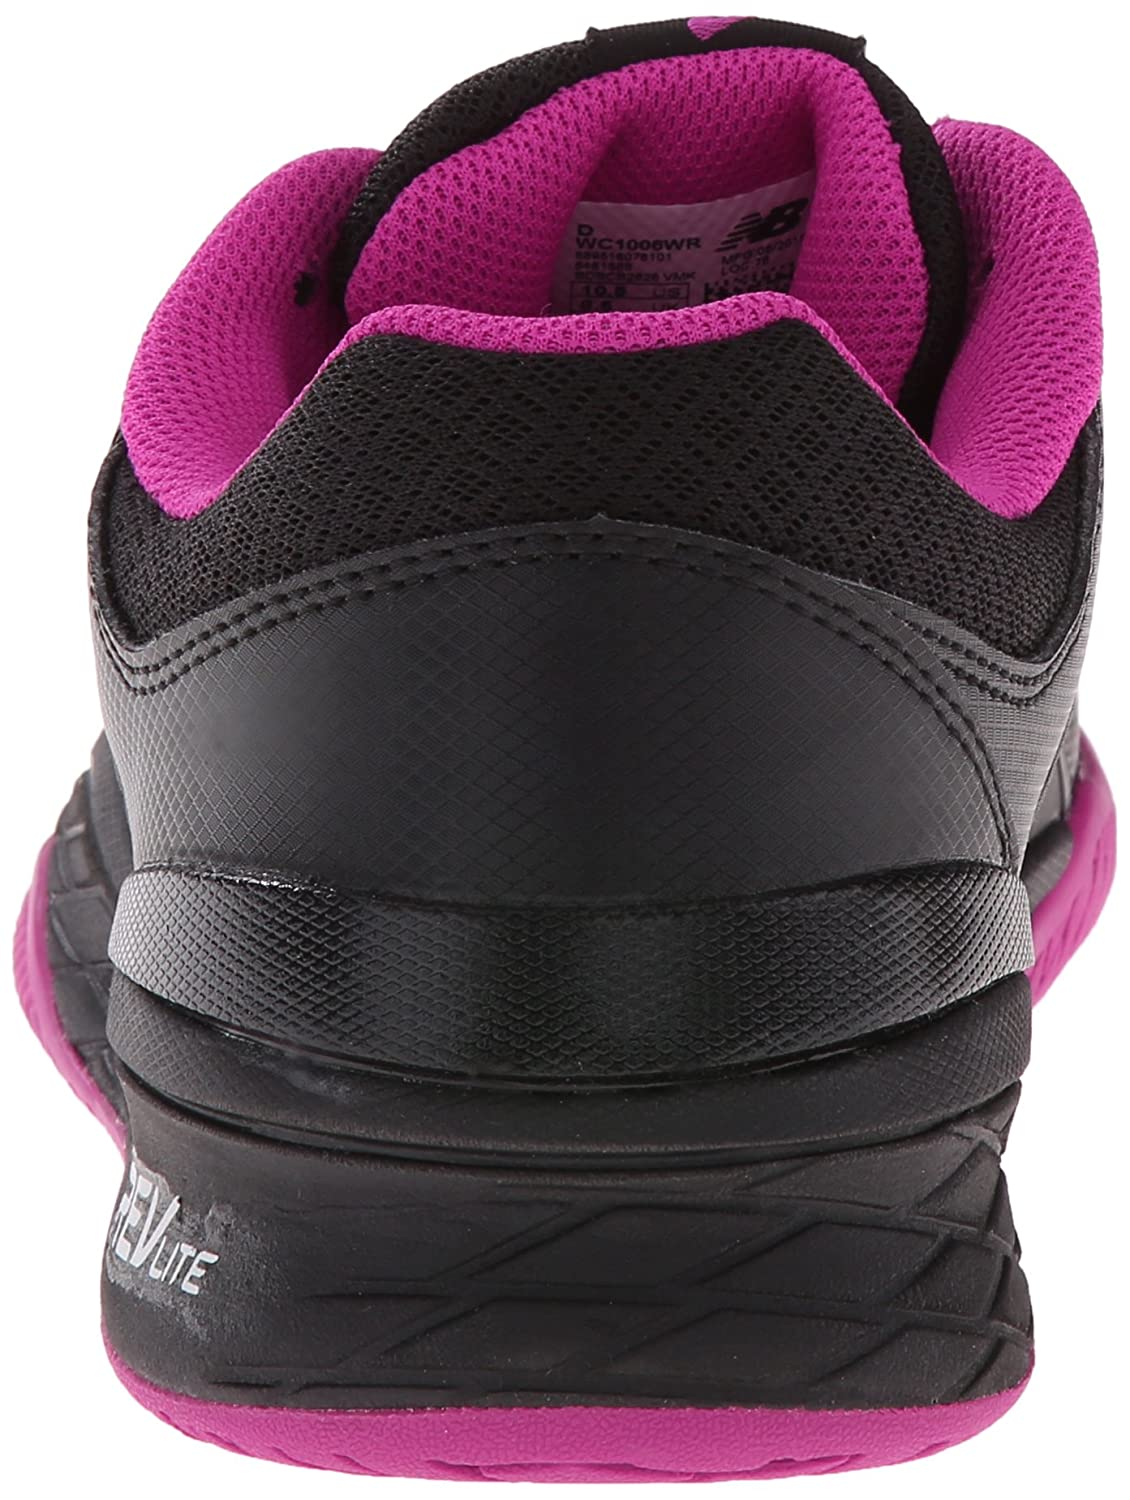 New Balance Women's WC1006v1 Tennis Shoe B00V3QVF9U 8.5 2A US|Black/Pink